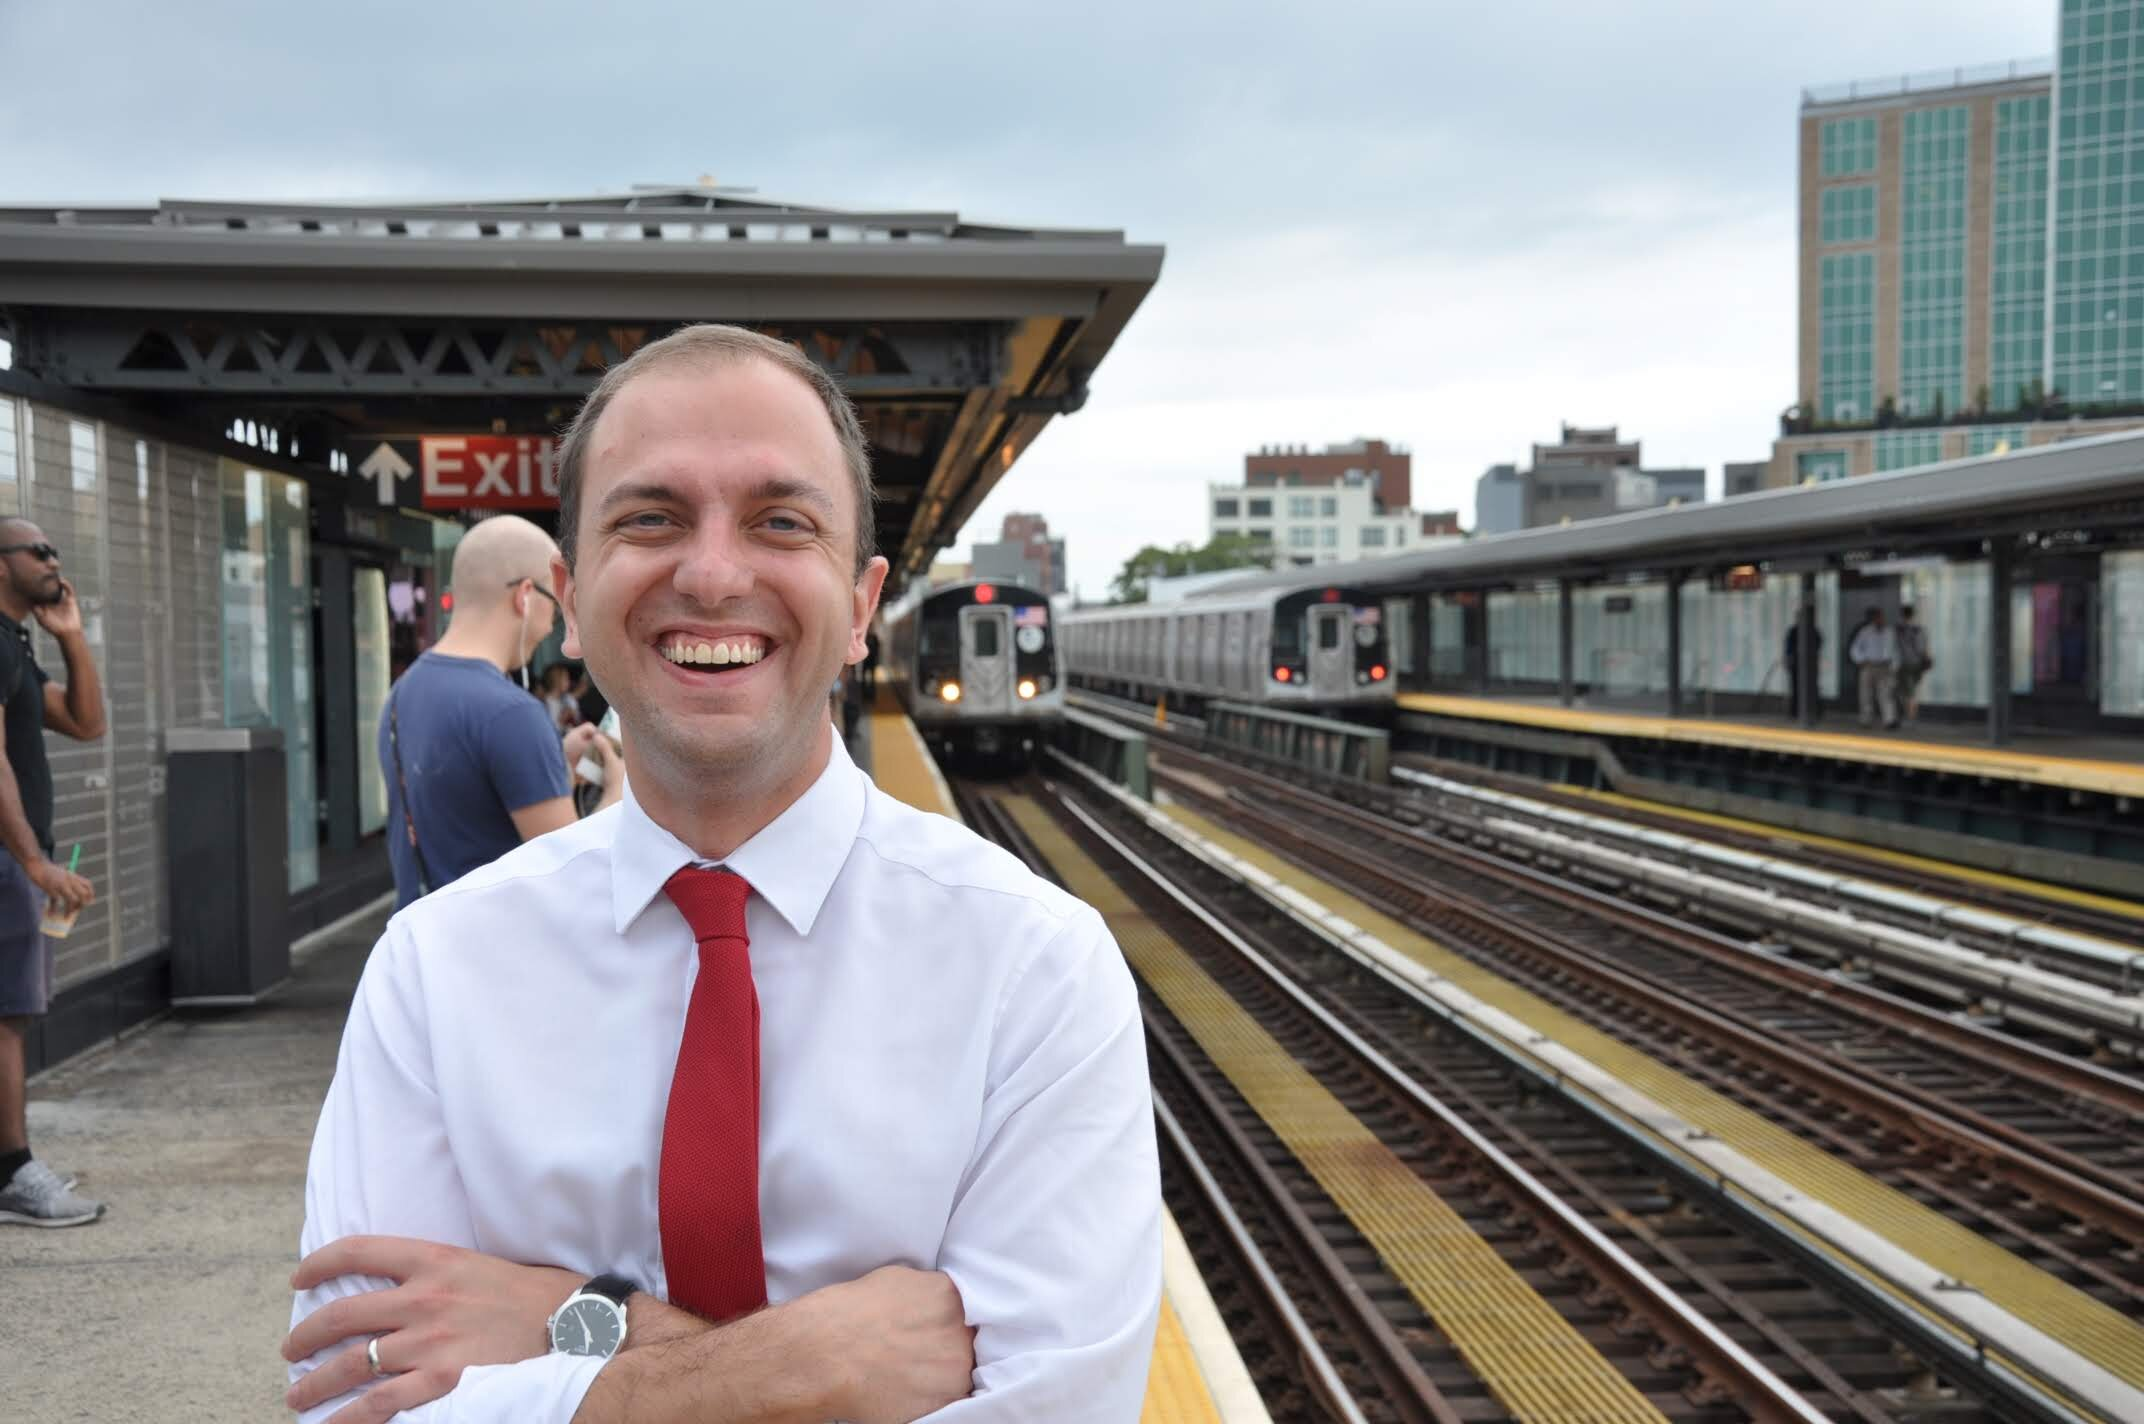 Nick Roloson, chief of staff for Councilmember Costa Constantinides, is running for his boss' seat representing District 22. Photo courtesy of Roloson.